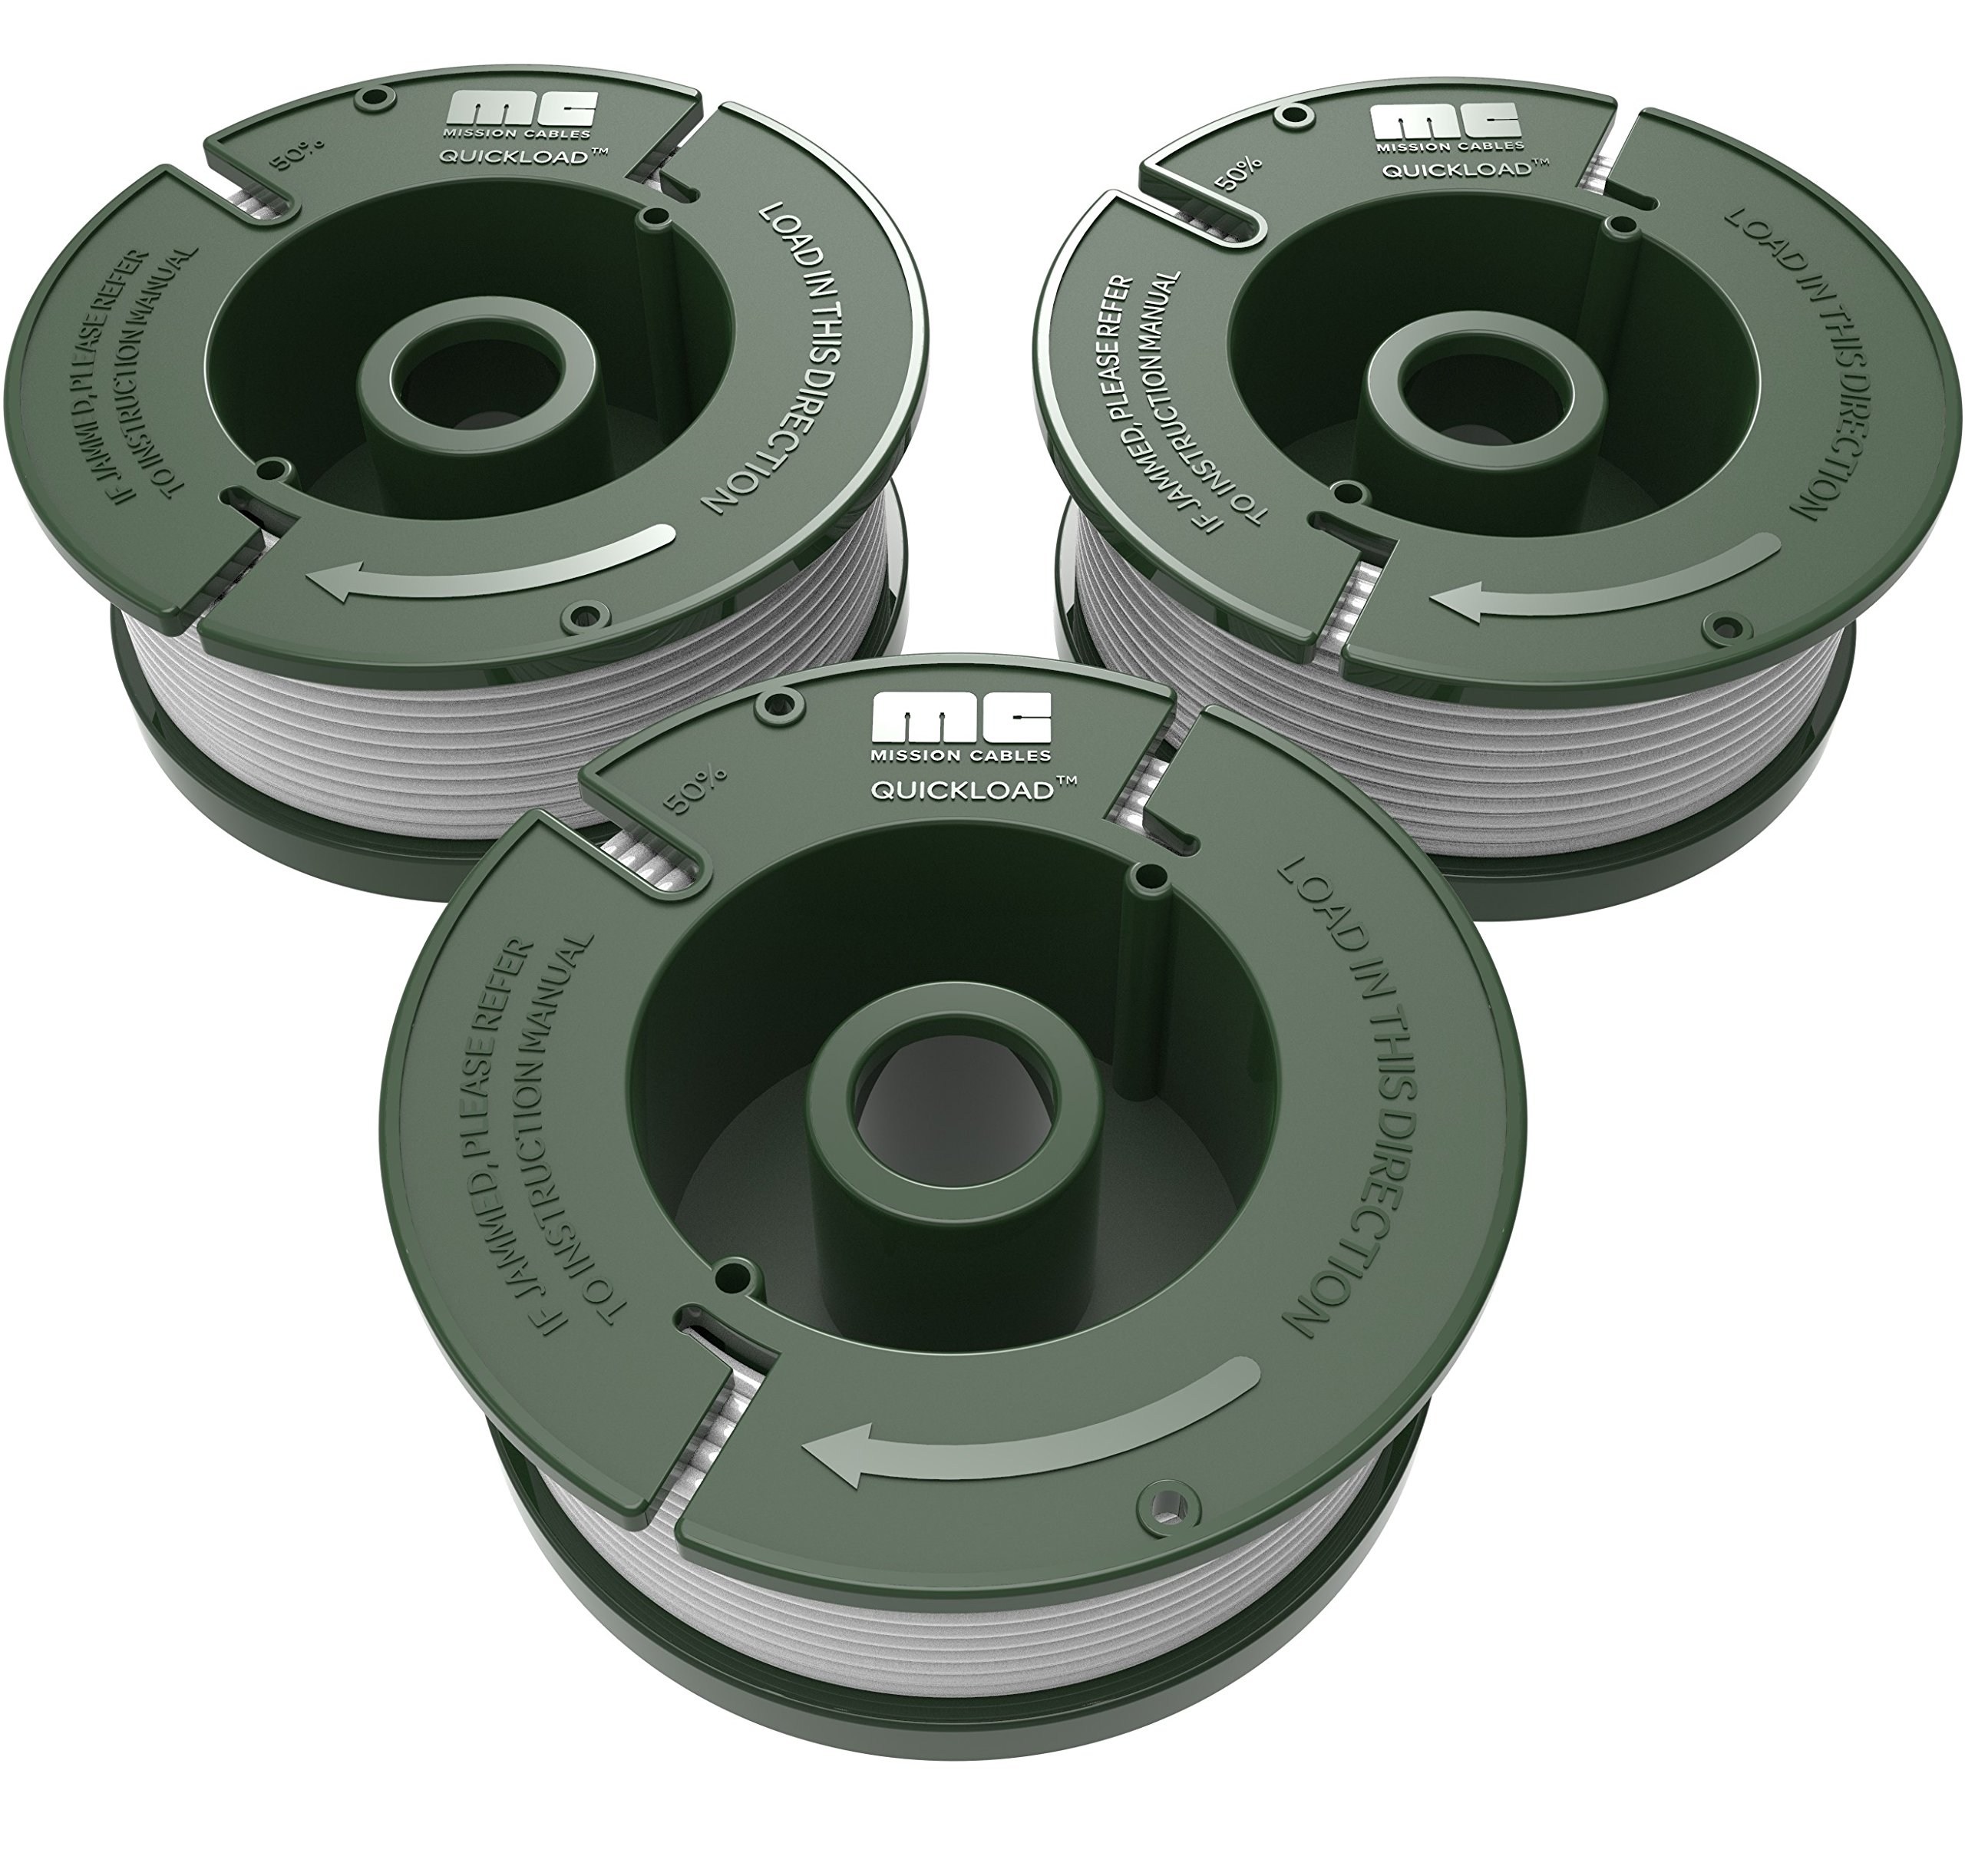 Quickload 0.065'' Replacement Autofeed Spool 3-Pack (Compatible with AF-100 / BLACK and DECKER String Trimmers)